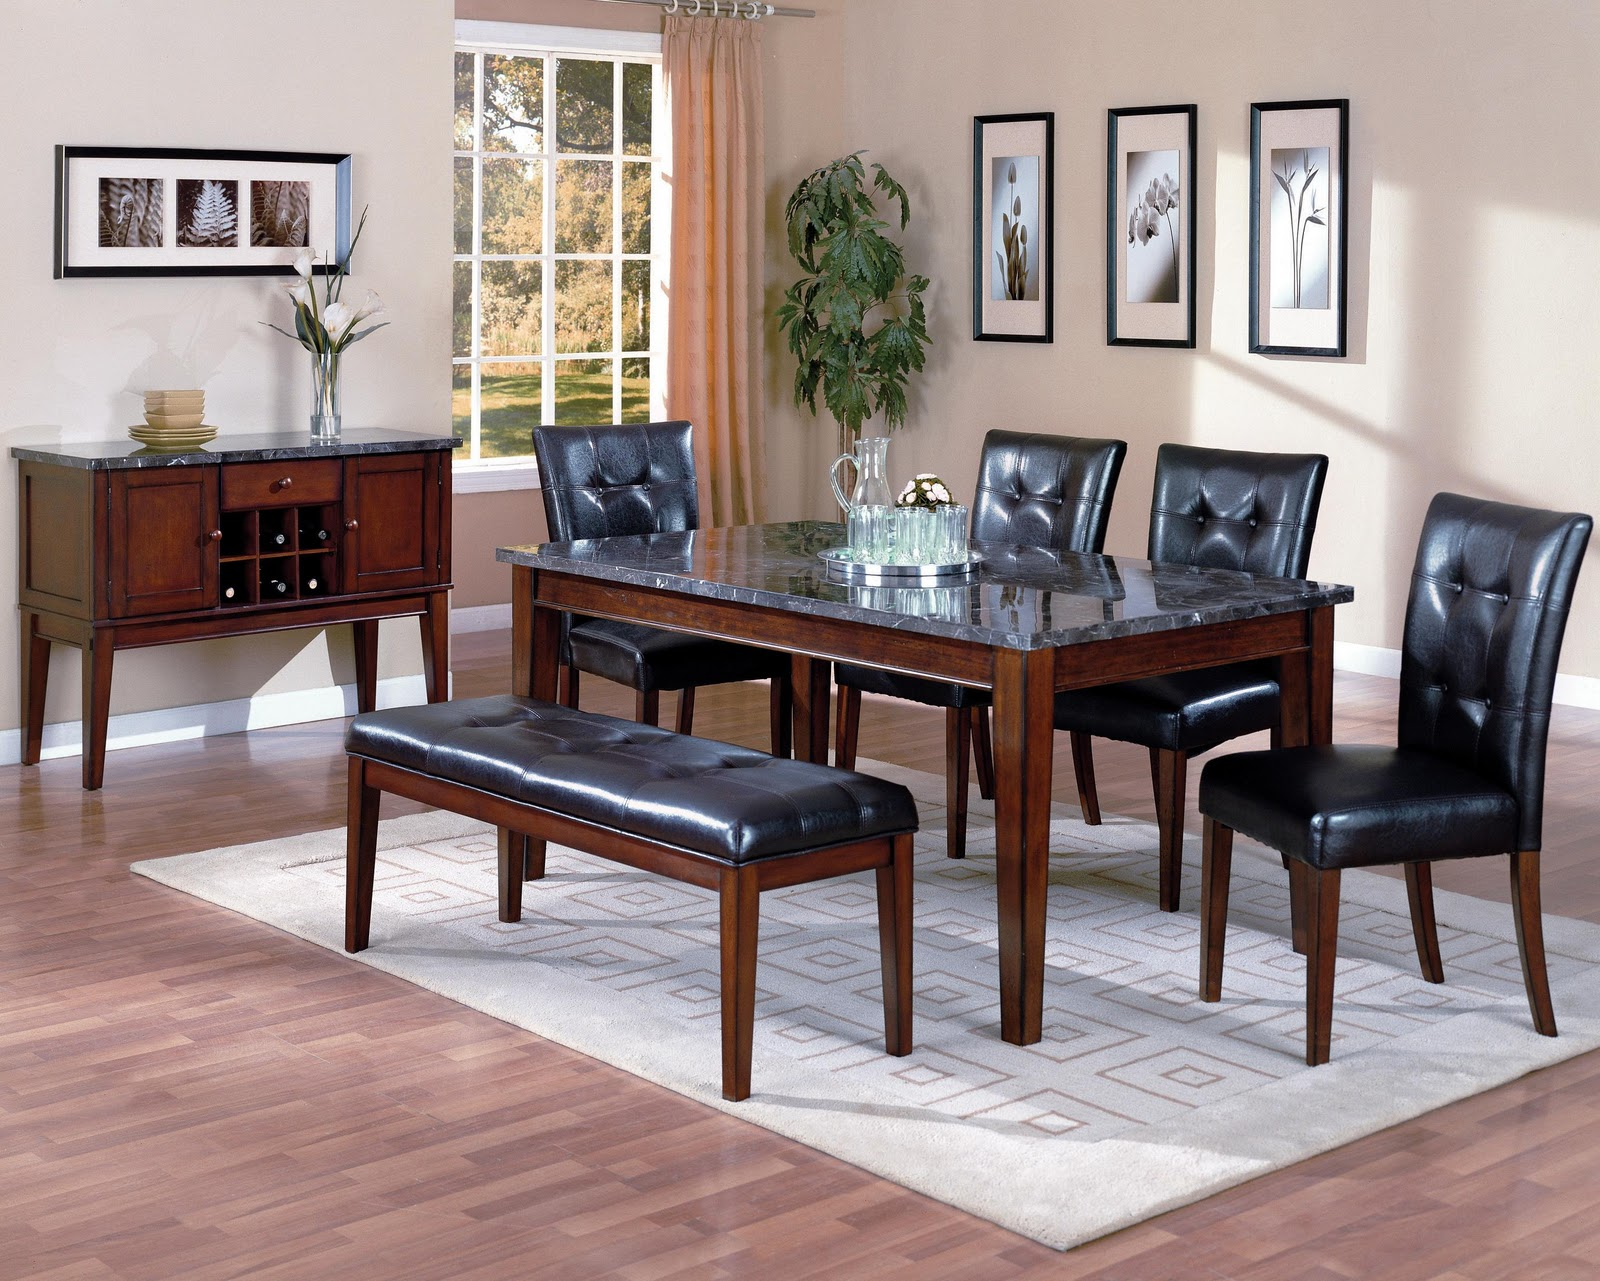 World Imports 6284 Dining Room Set Royal Furniture Outlet 215 355 2880 SPOTLIGHT ITEM